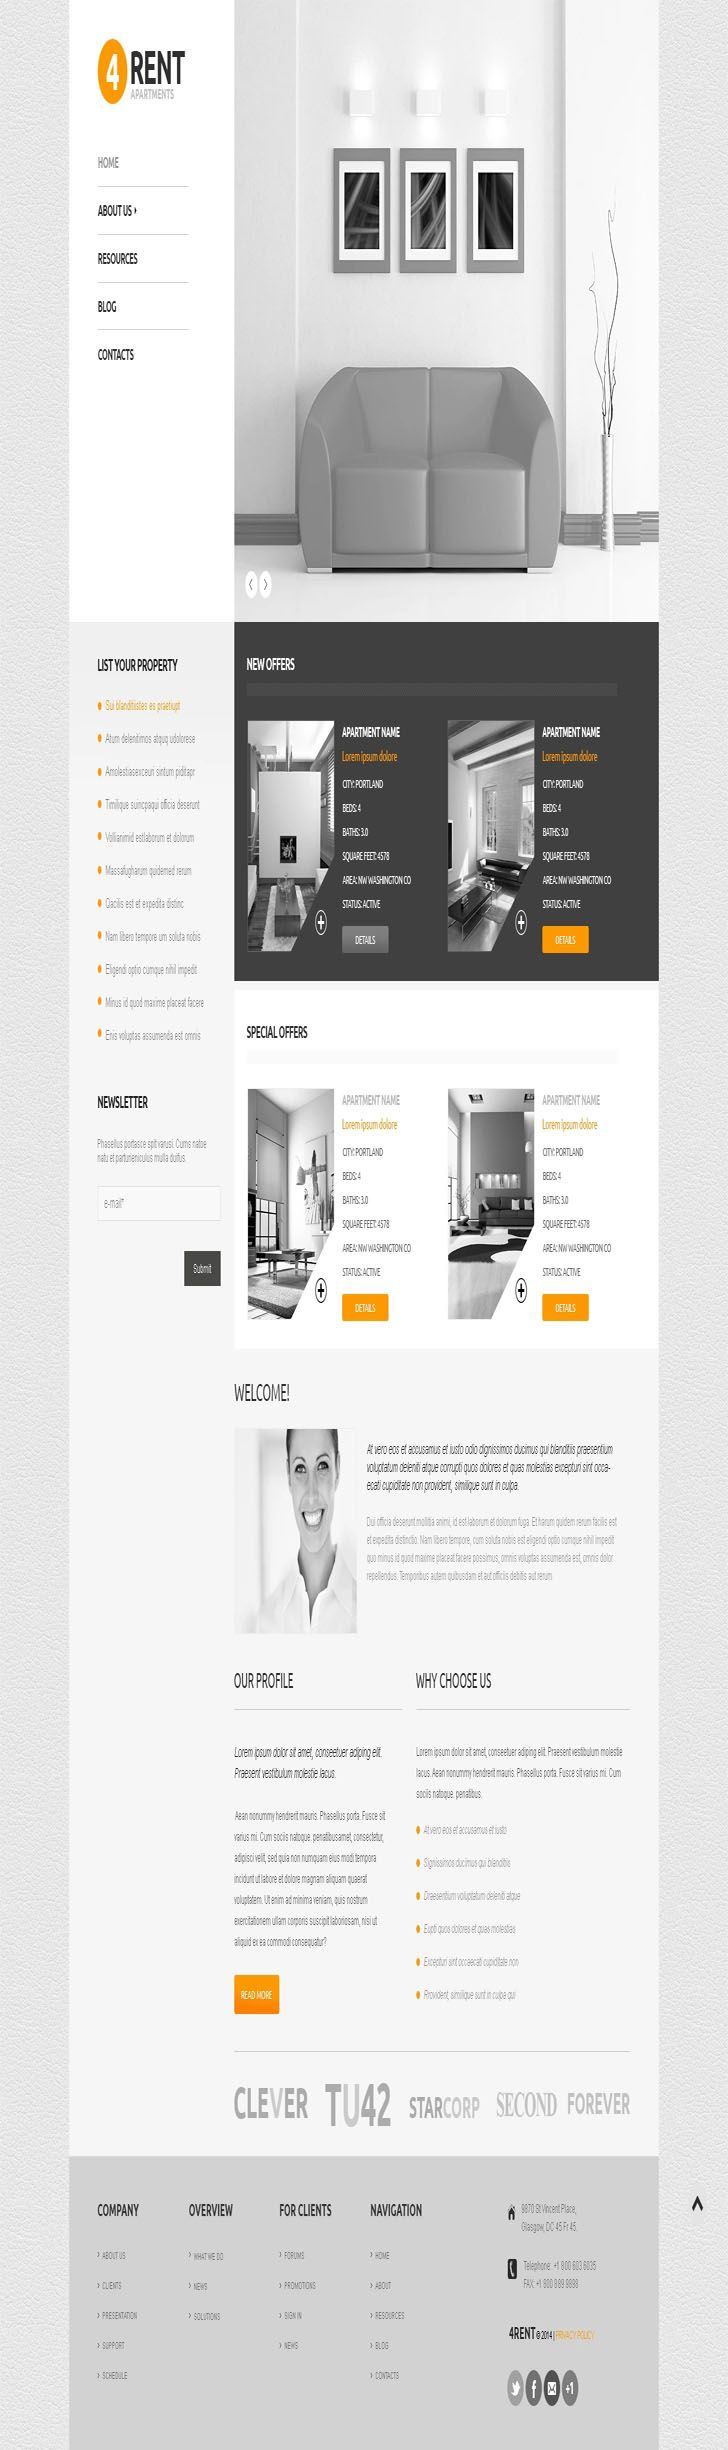 #Real #Estate #Agency #Responsive #WordPress #Theme.Cherry Framework Version:	3.1.5 WordPress Compatibility:	4.2.x-4.9.x WordPress Engine:	4.4.x Additional Features:	Advanced Theme Options, Sliced PSD, Back To Top Button, Calendar, Custom Page Templates, Dropdown Menu, Favicon, Google map, Google Web Fonts, Social Options, Tabs, Tag Cloud, Tooltips Additional Info:	Well Documented Animation:	HTML plus JS Bootstrap Version:	2.3.1 Coding:	CSS 3, HTML 5, JQuery, LESS